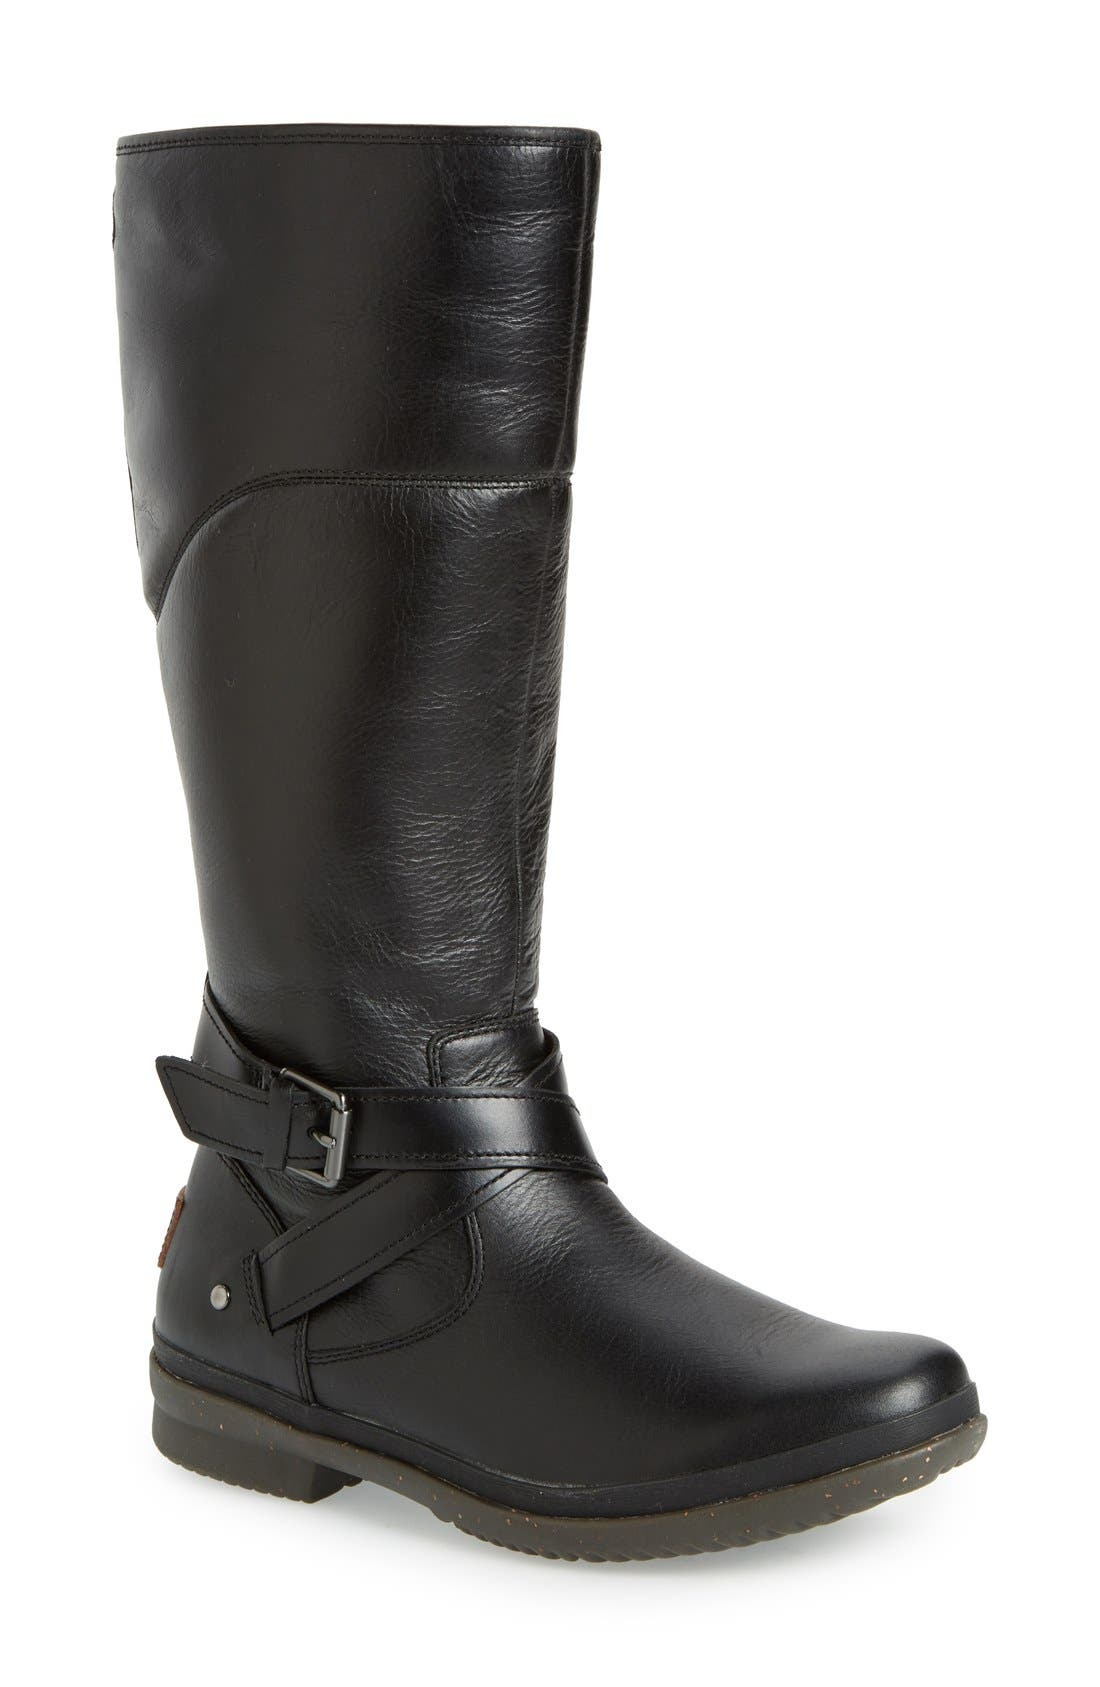 Main Image - UGG® Evanna Riding Boot (Women)